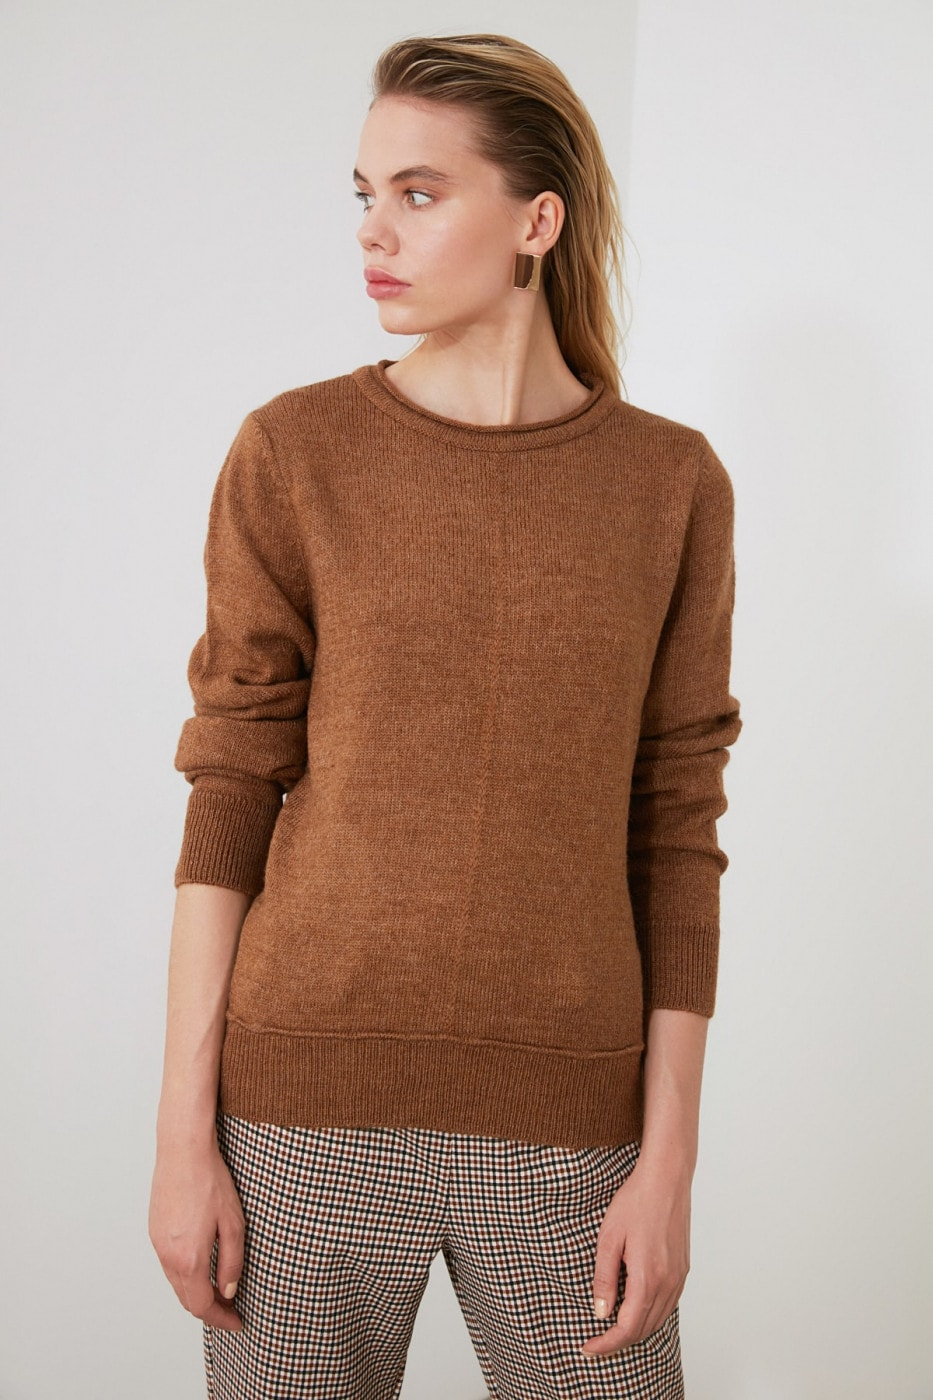 Trendyol Brown Bicycle Collar KnitWear Sweater